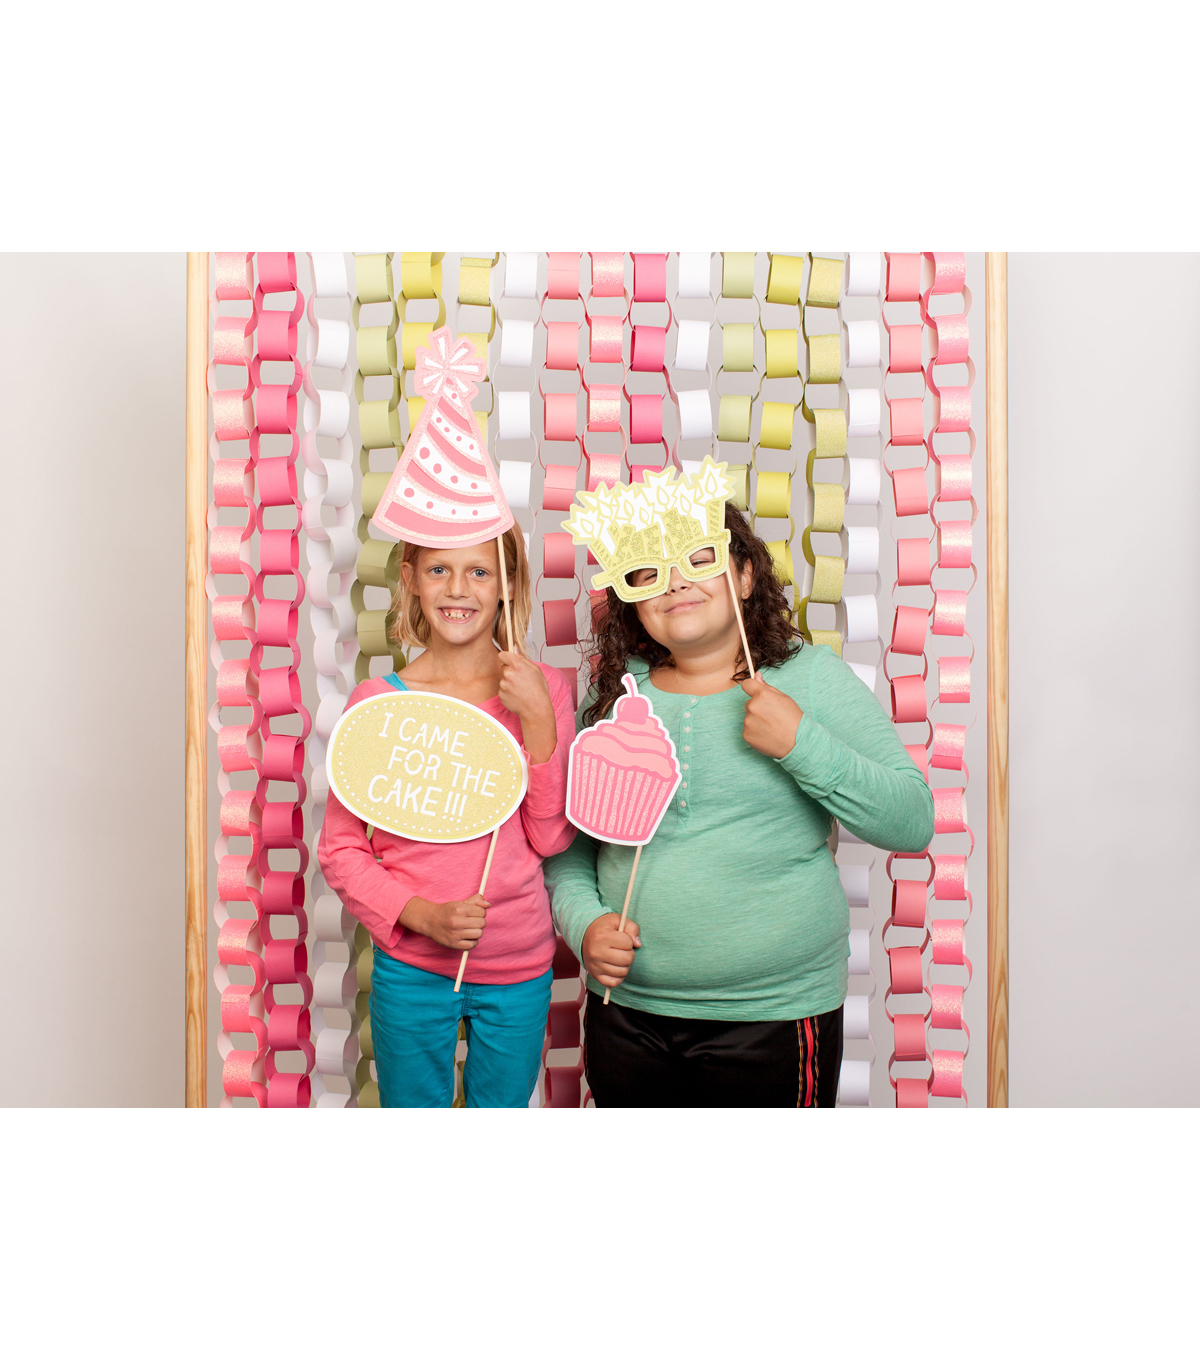 Cricut® Cartridge Photo Booth Props